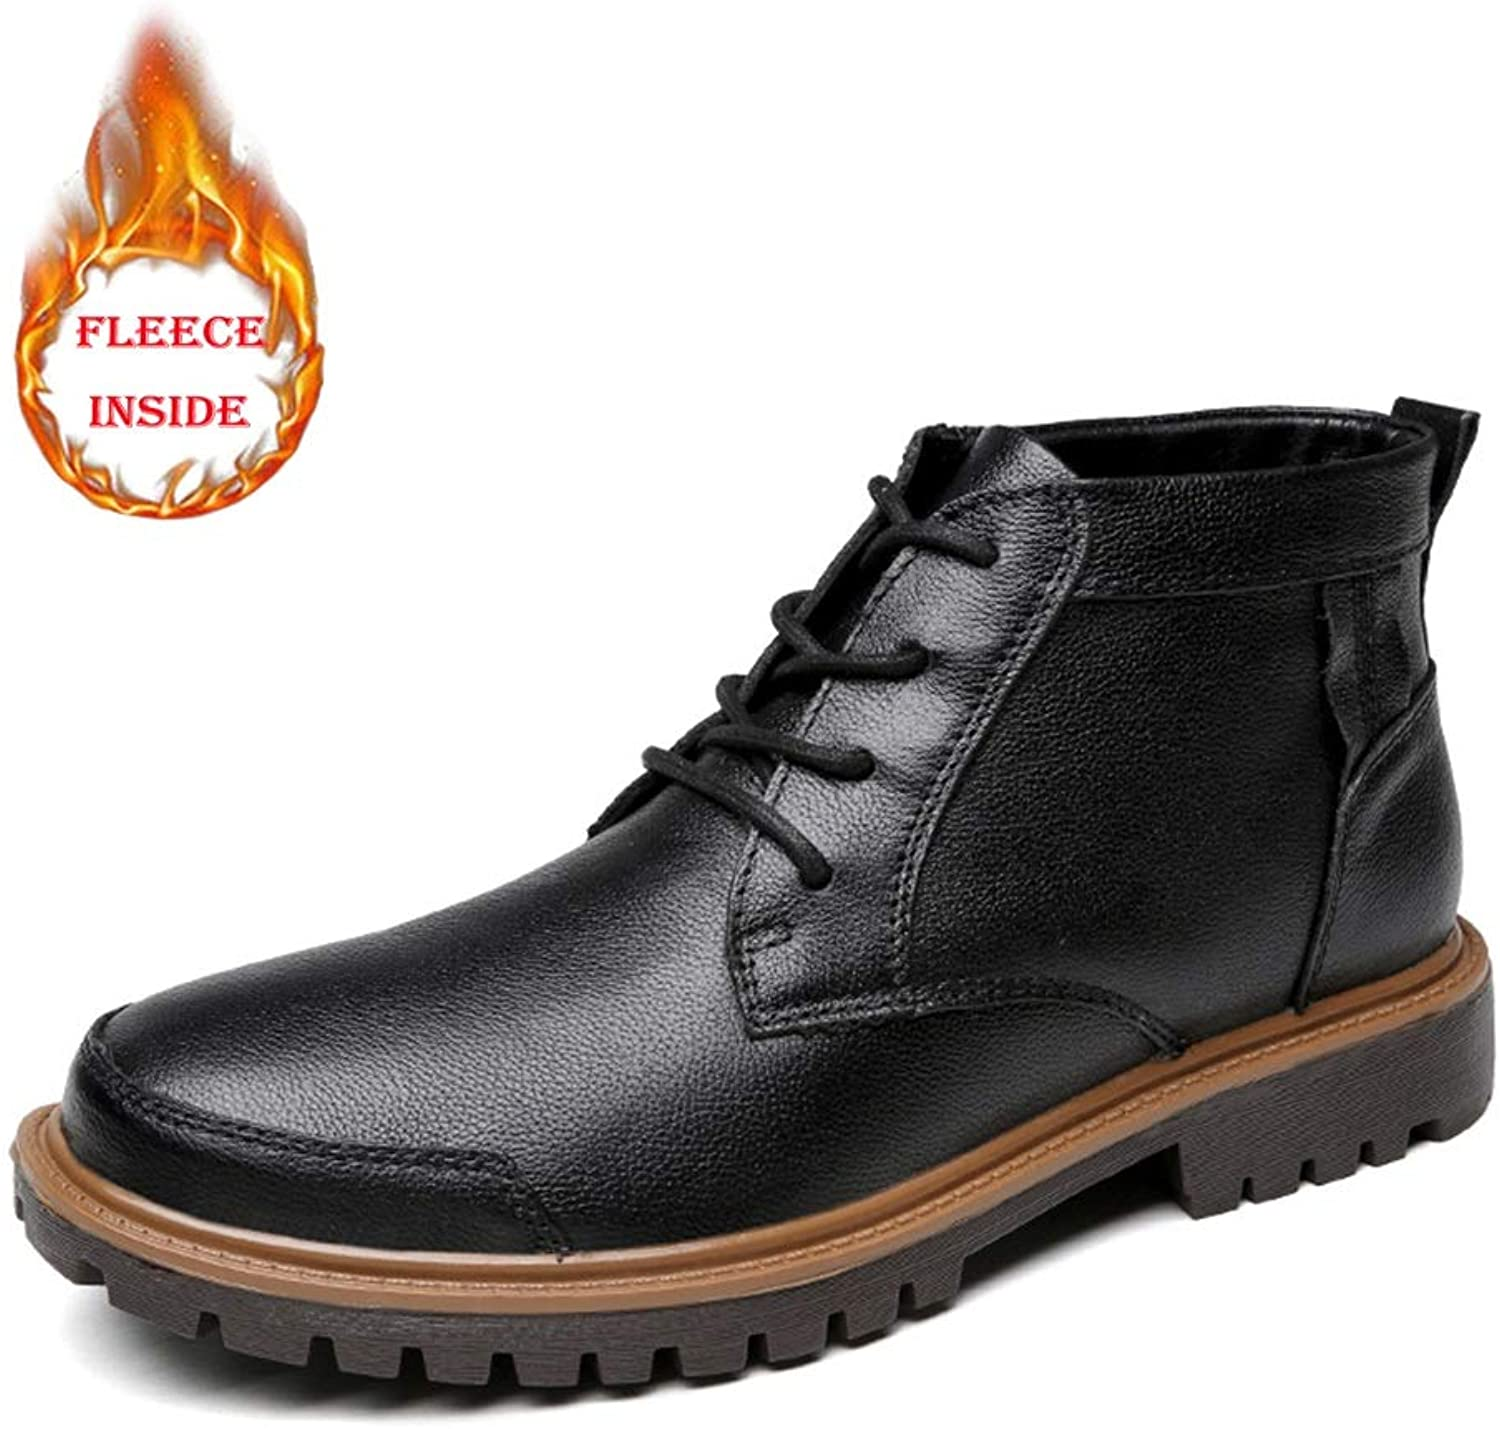 Men's Martin Boots, Fashion Casual Lace-up High Top Fleece Inside Outdoor shoes(Conventional Optional)